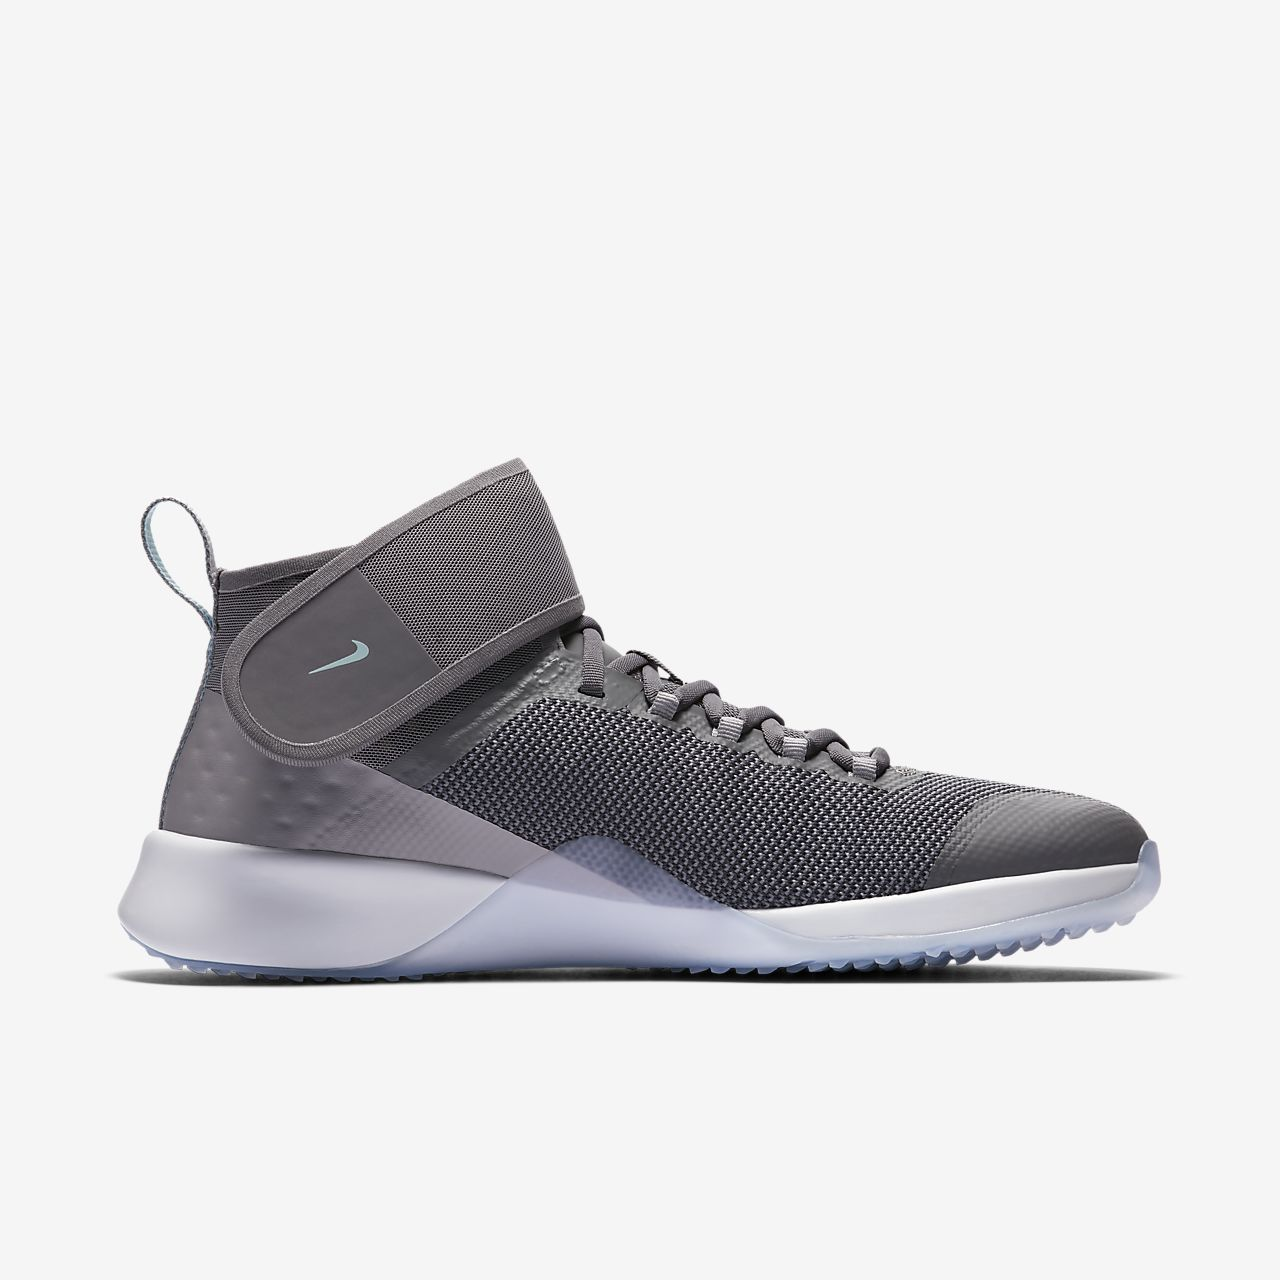 nike scarpa donna nike wmns nike air zoom strong nuova collezione uffici 10